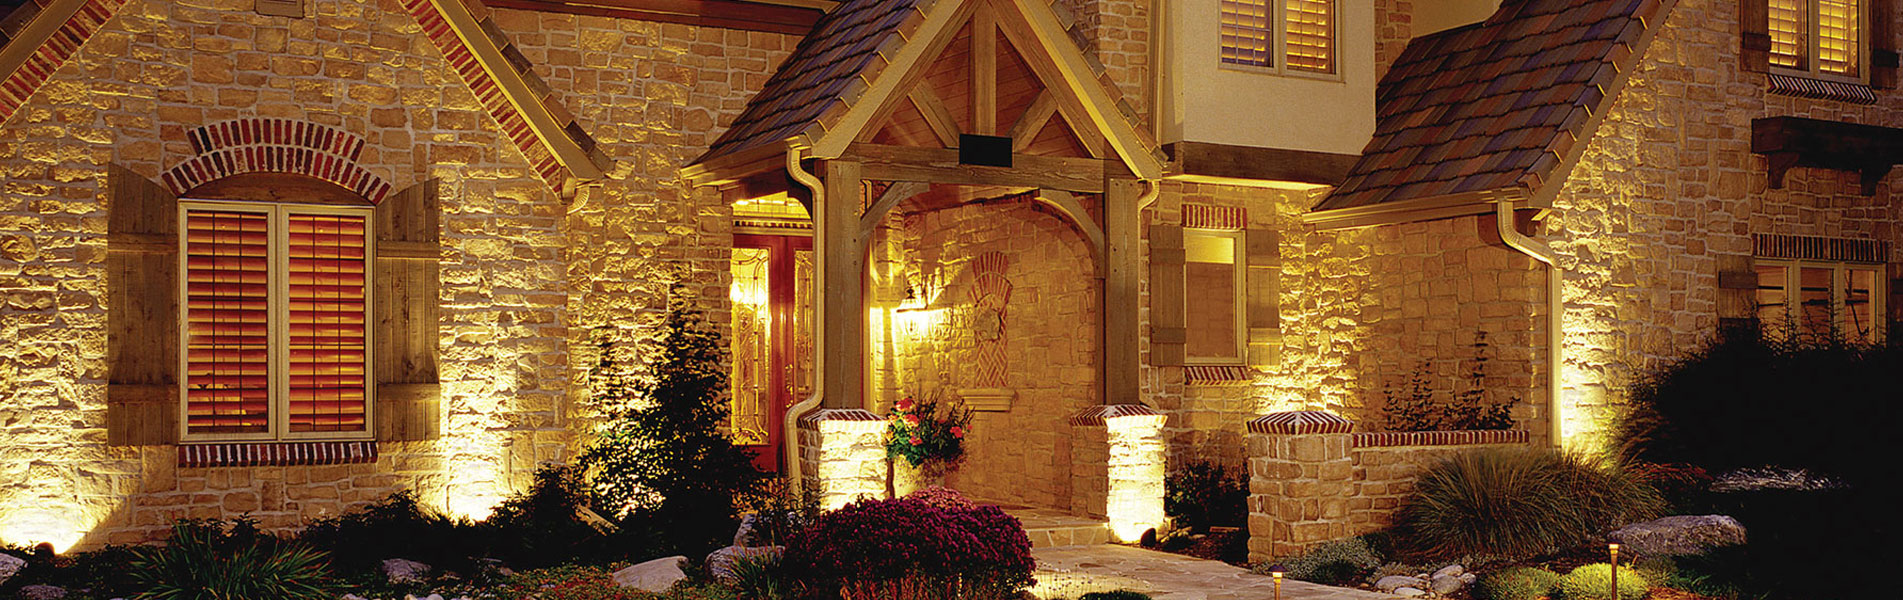 Cleveland and northern ohio outdoor lighting outdoor lighting design aloadofball Image collections